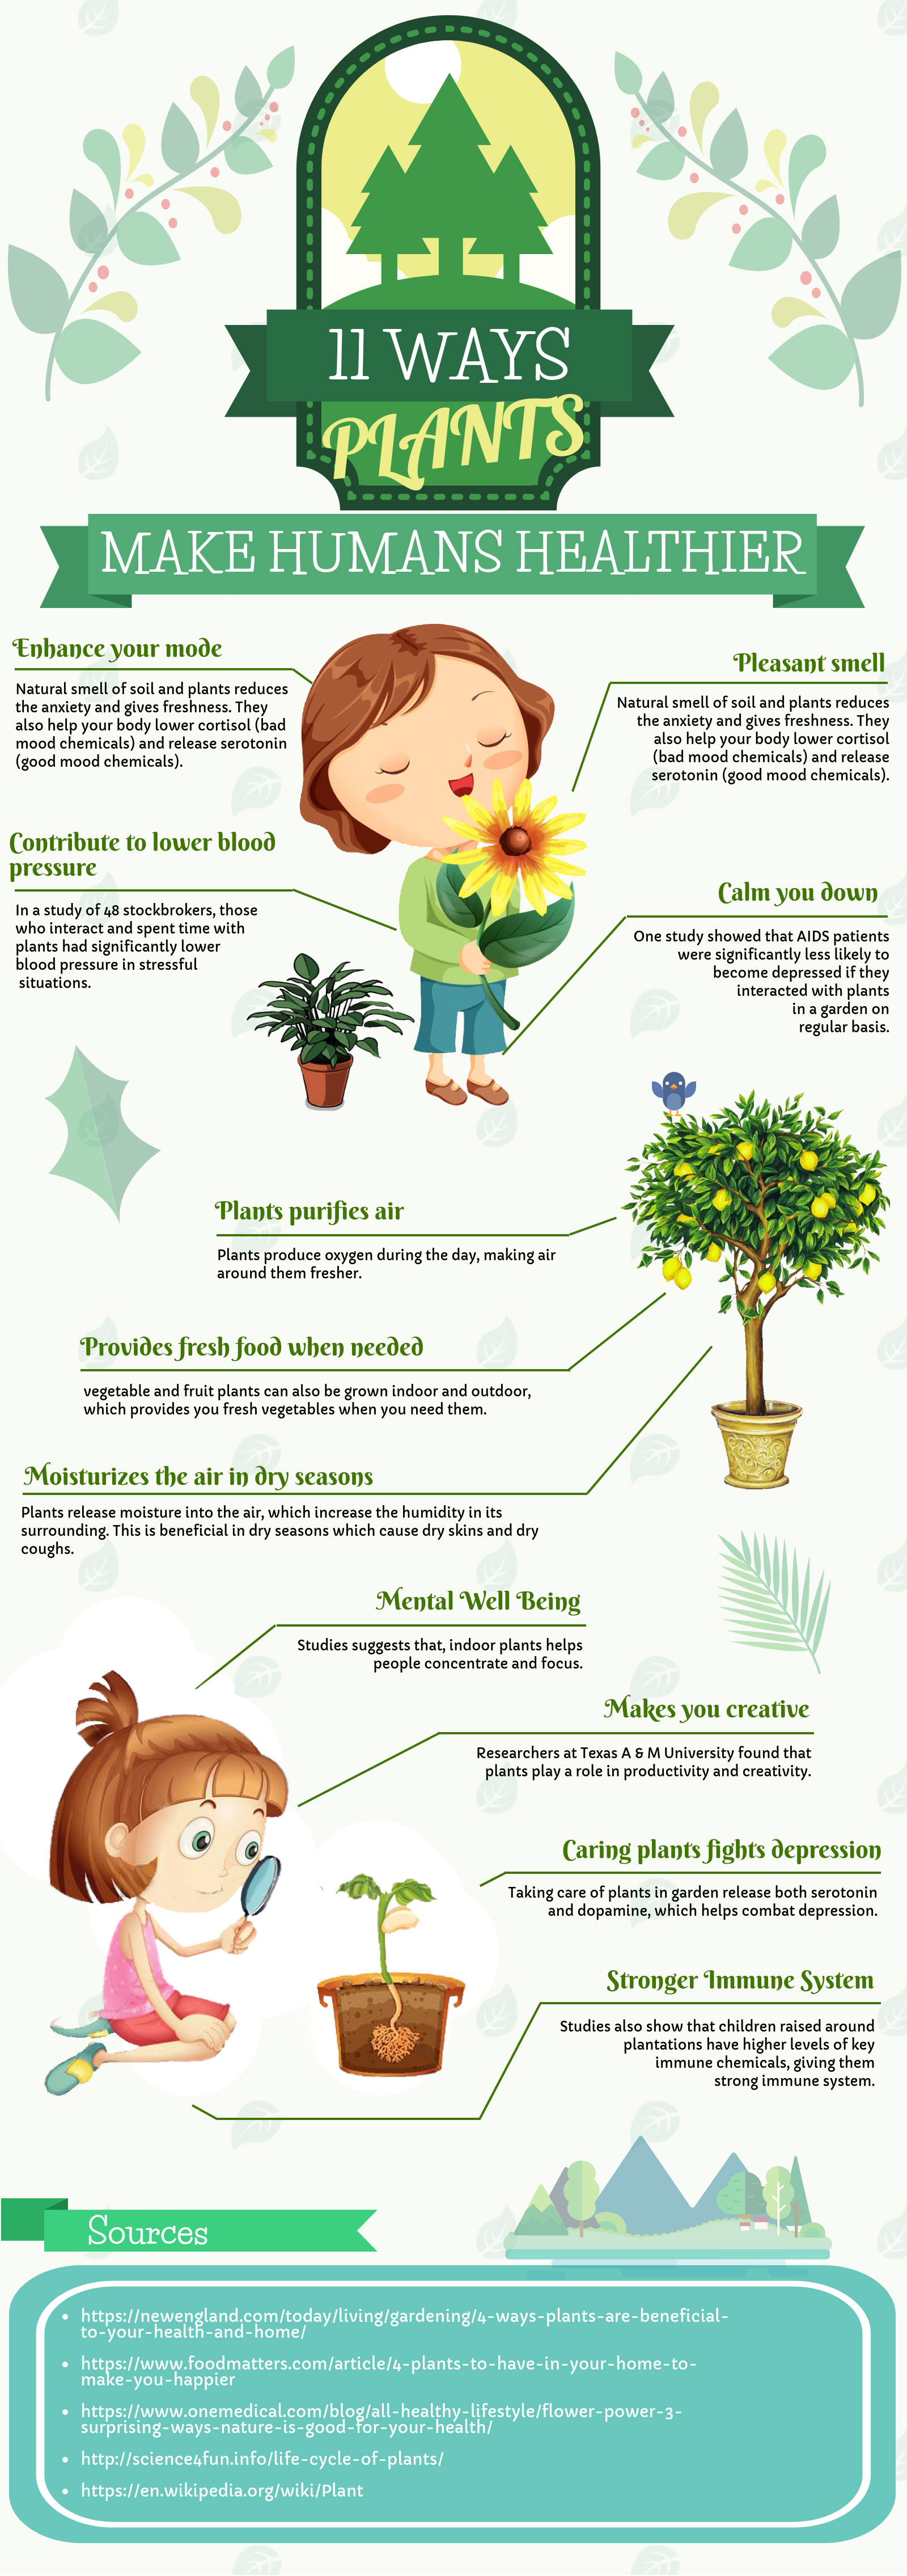 11-ways-plants-make-humans-healthier-infographic